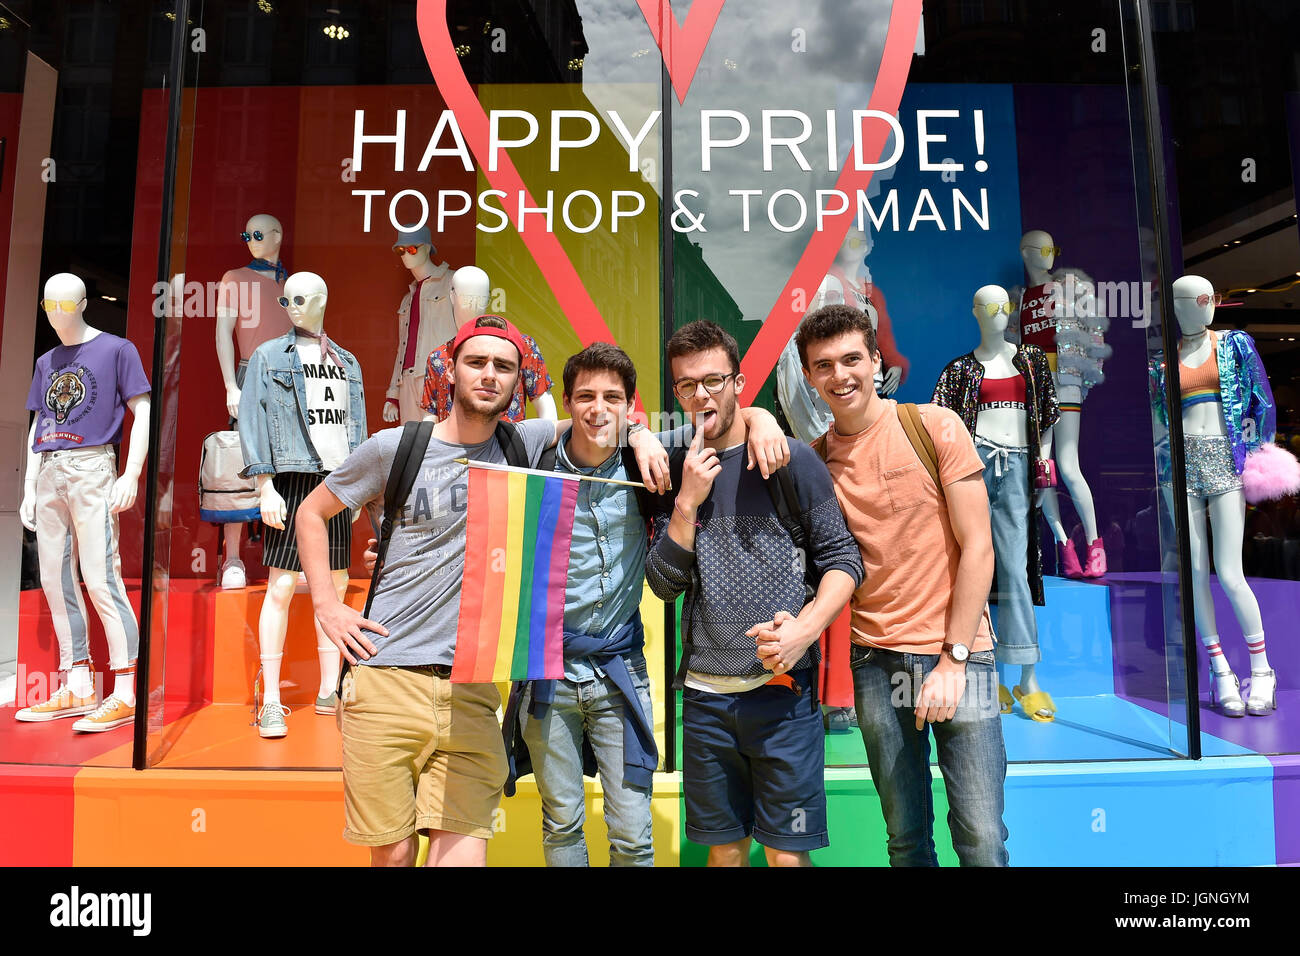 London, UK. 08th July, 2017. Tourists posed photo in front of Top Shop during Pride In London on Saturday. Photo - Stock Image